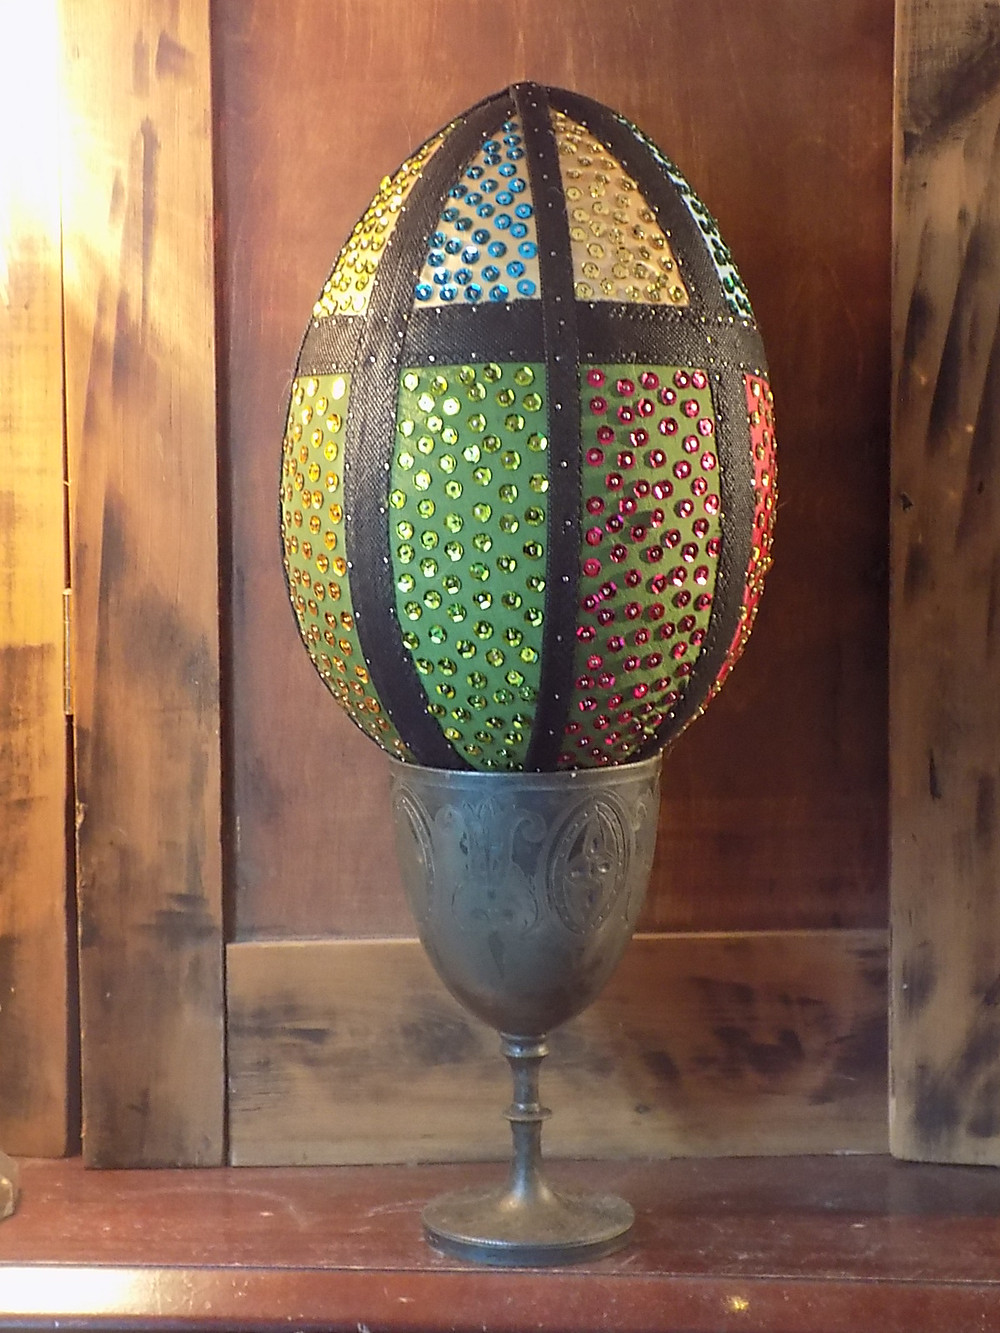 Christine Cunningham demonstrates HOW TO CREATE A TEXTILE EASTER EGG in her monthly blog for mrxstitch magazine